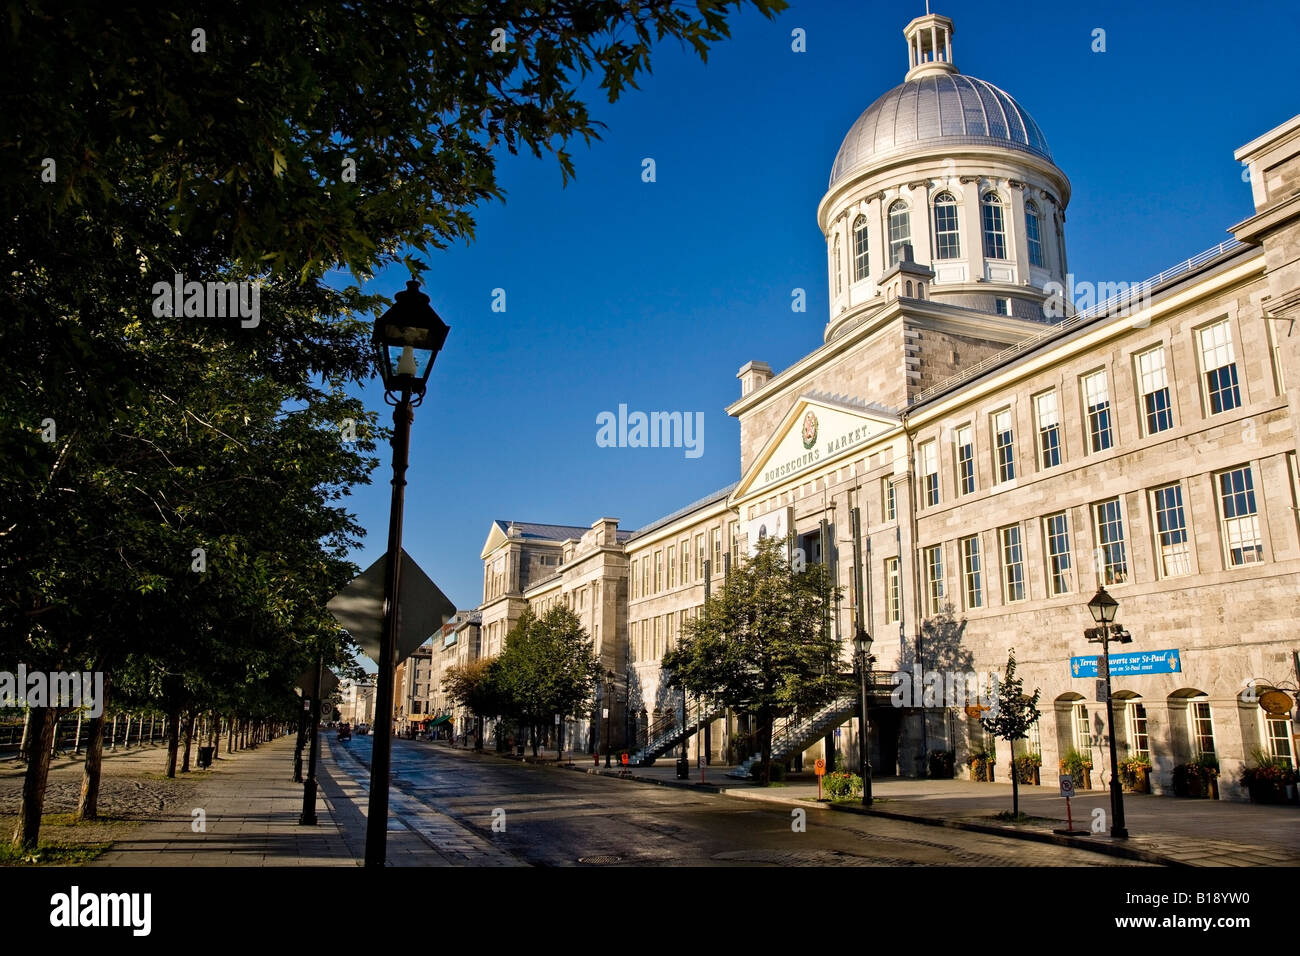 Marche Bonsecours market and rue de la Commune in Old Montreal, Quebec, Canada. - Stock Image